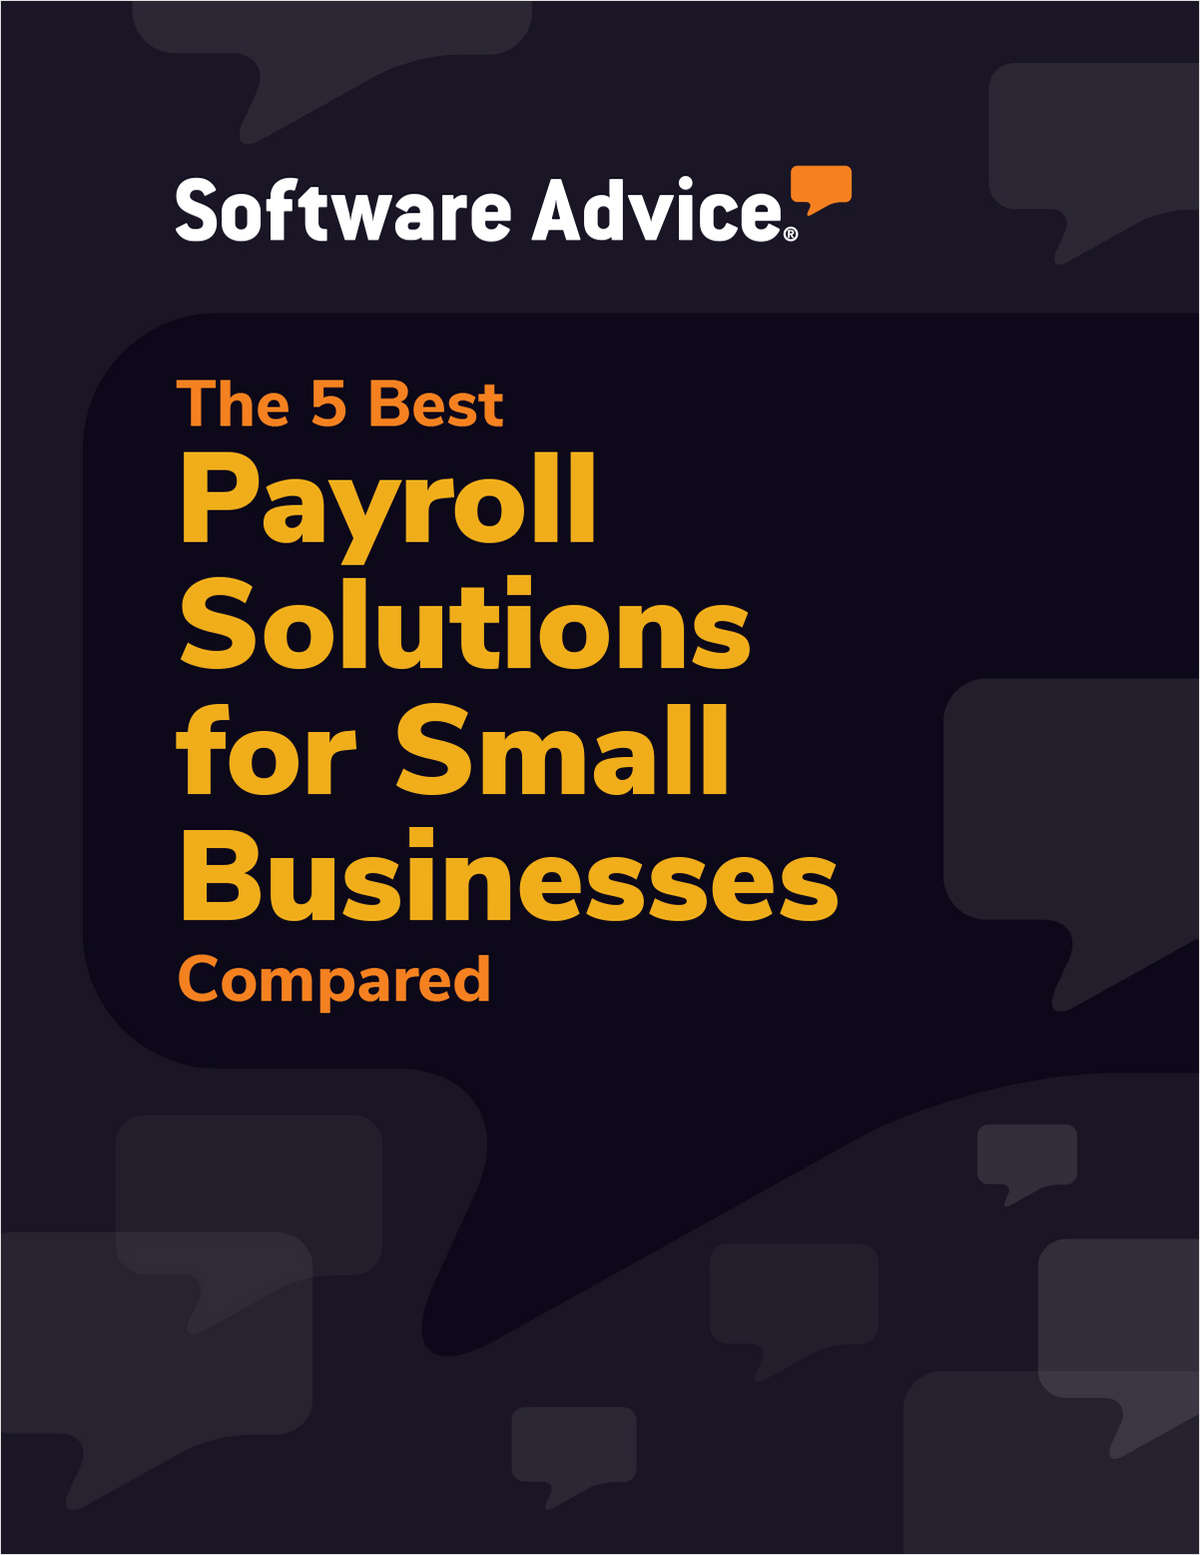 5 Best Payroll Solutions for Small Businesses Compared